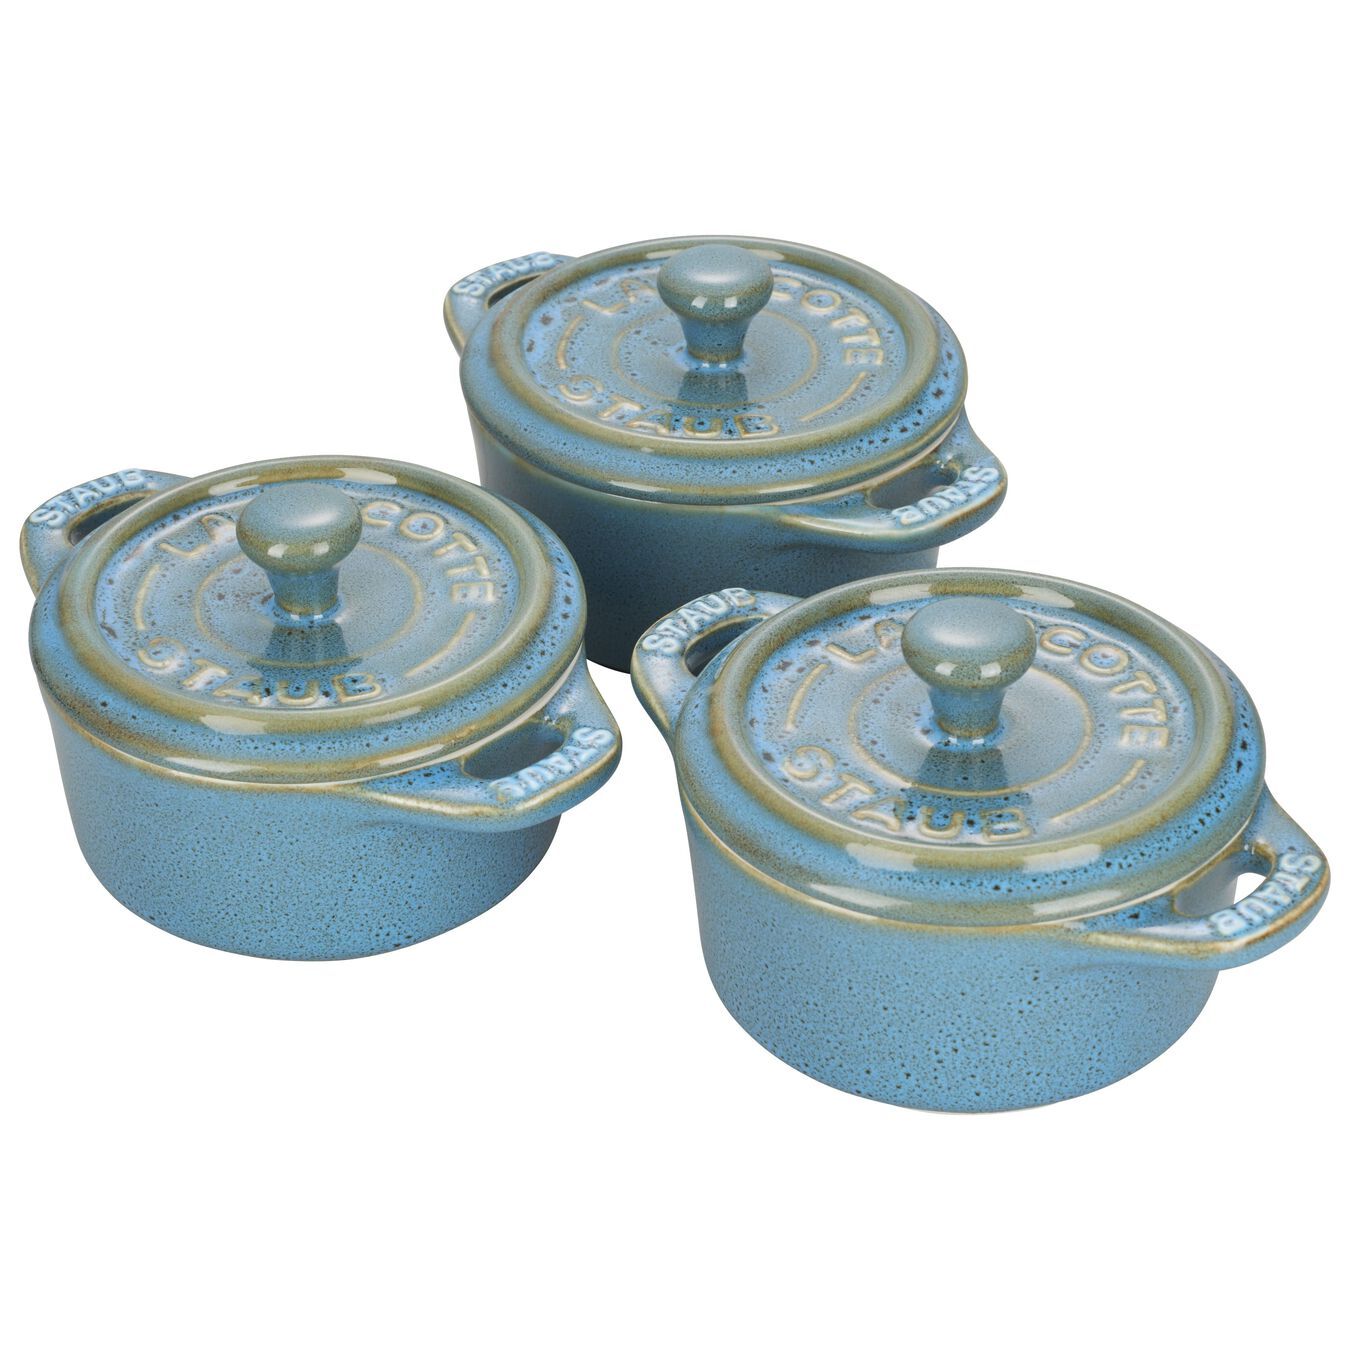 3-pc Mini Round Cocotte Set - Rustic Turquoise,,large 1